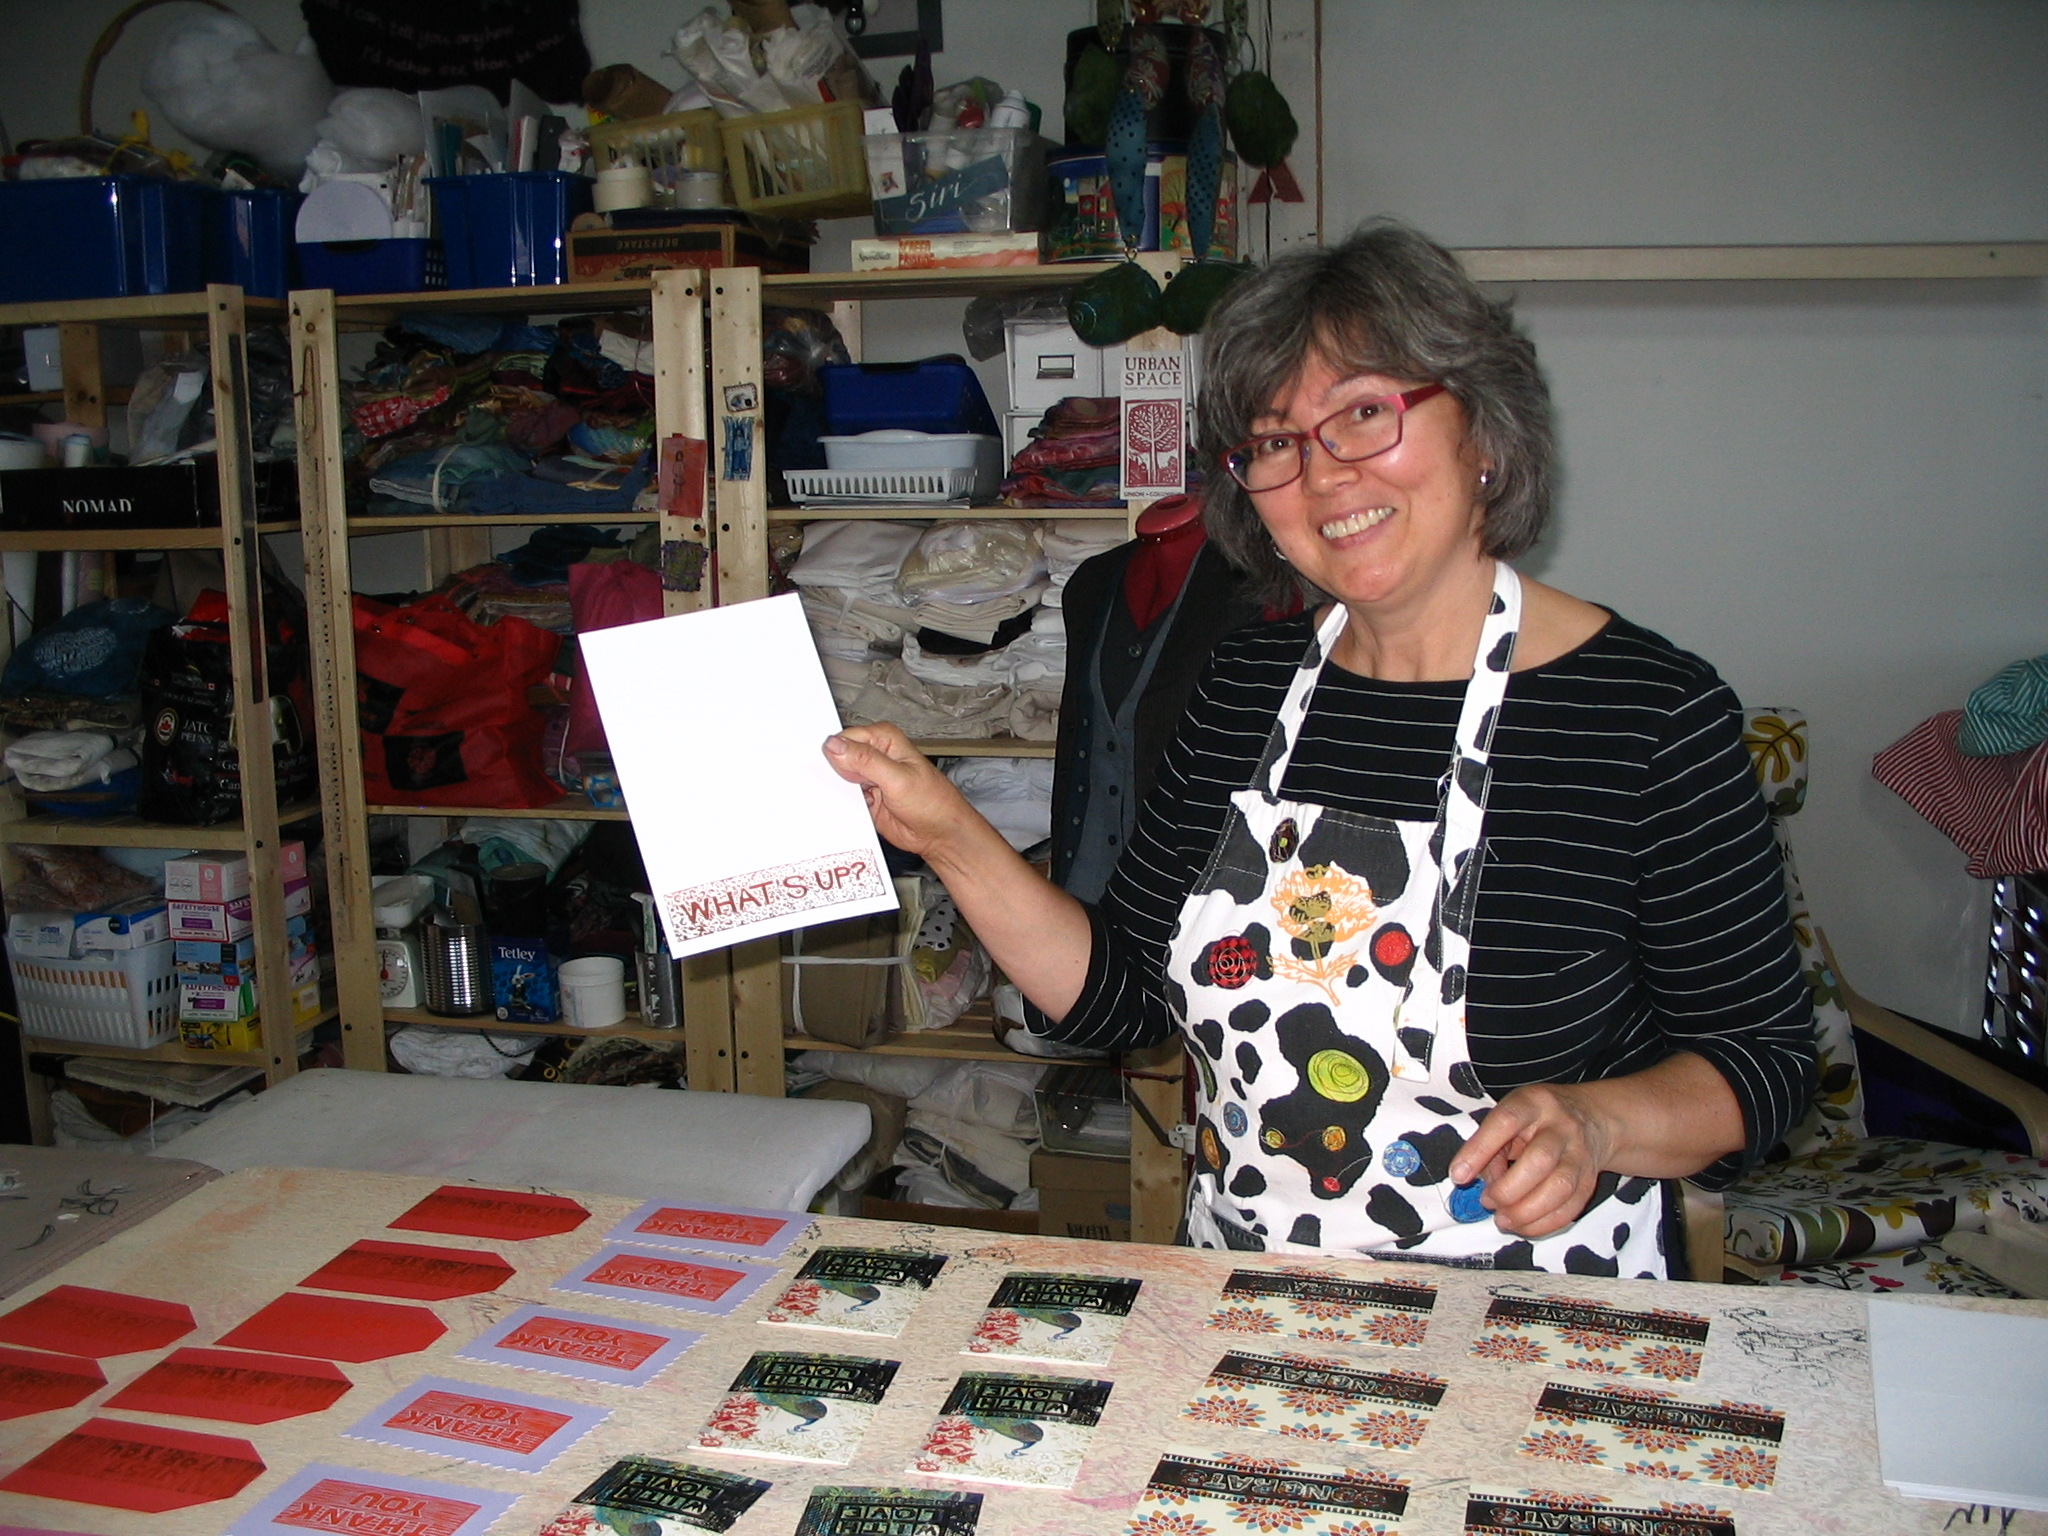 showing my printing